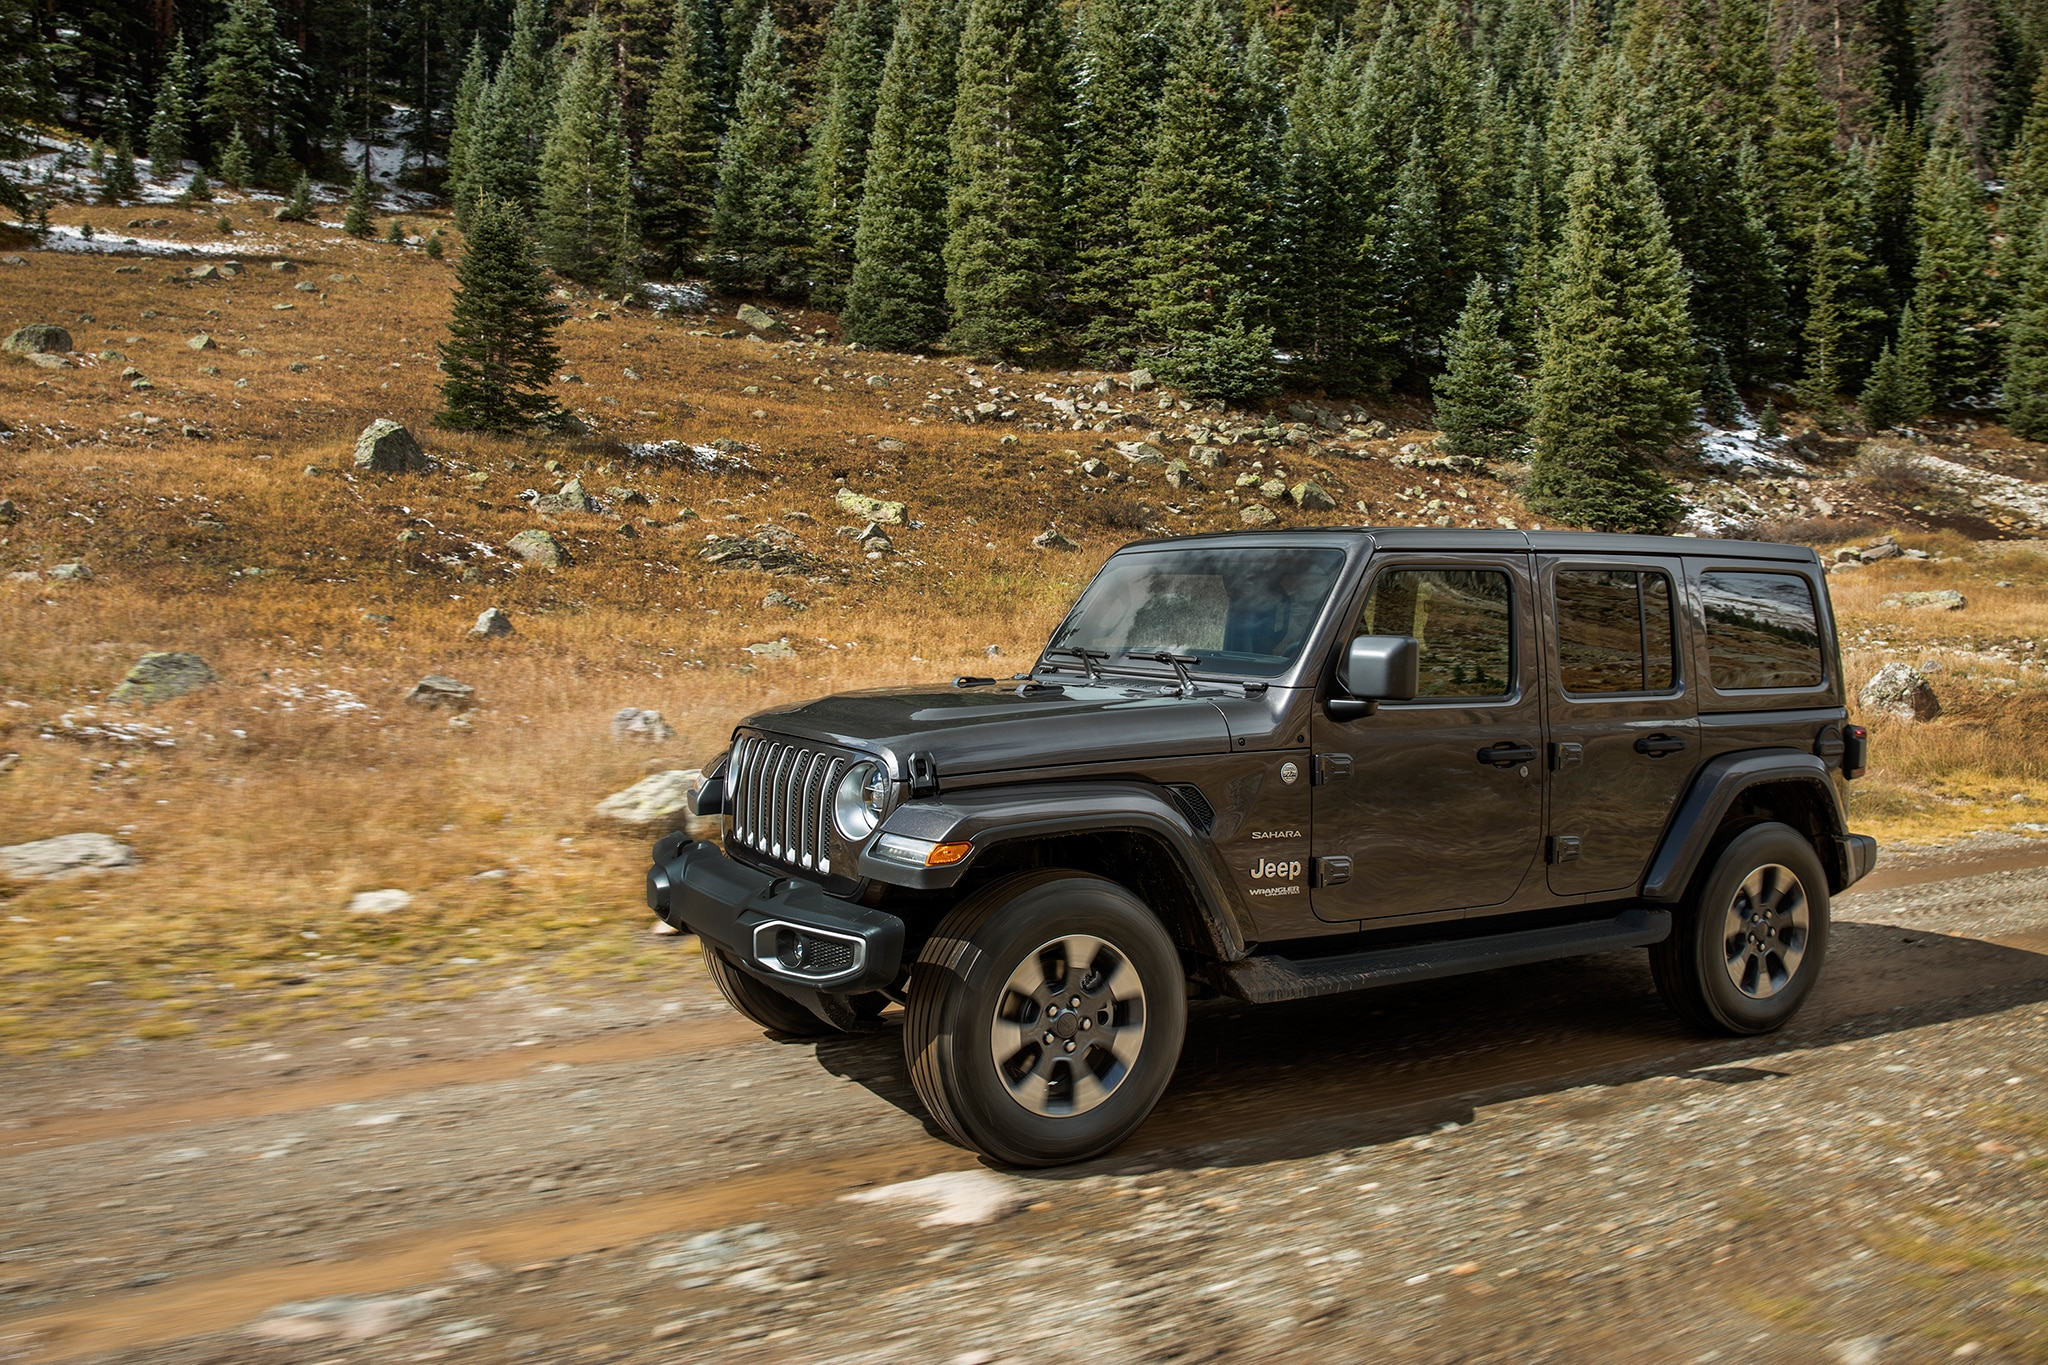 2018 Jeep Wrangler Jl Soft Top >> 2018 Jeep Wranger Unlimited Sahara | Automobile Magazine